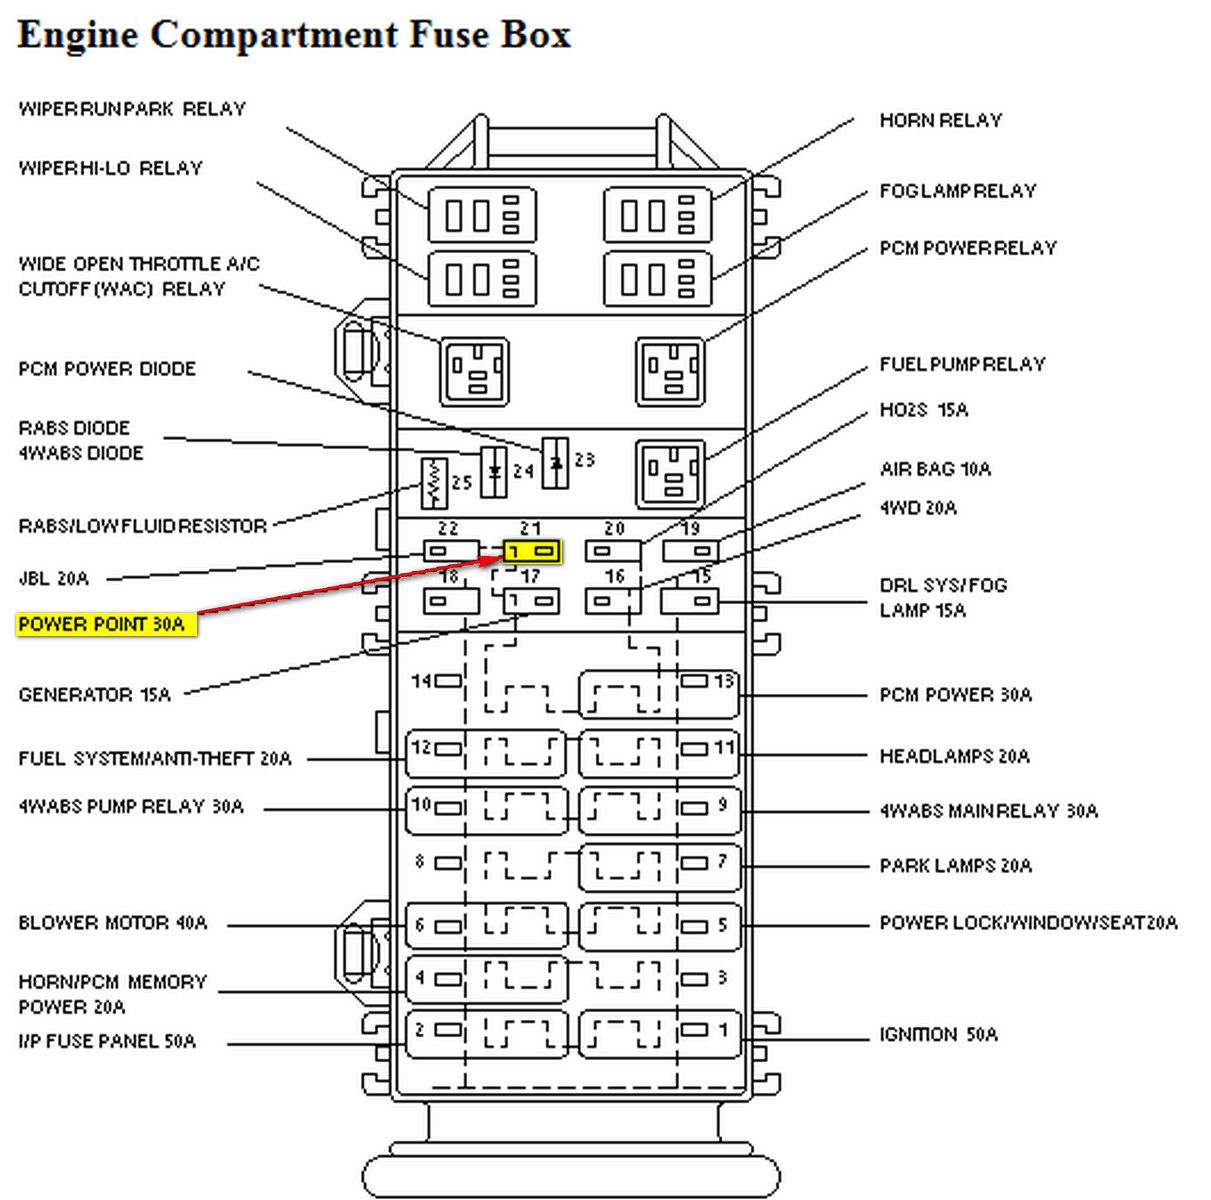 8a55967da7ae1bd251b795845886bd24 1993 ford ranger fuse box diagram 1992 ford ranger fuse box  at readyjetset.co